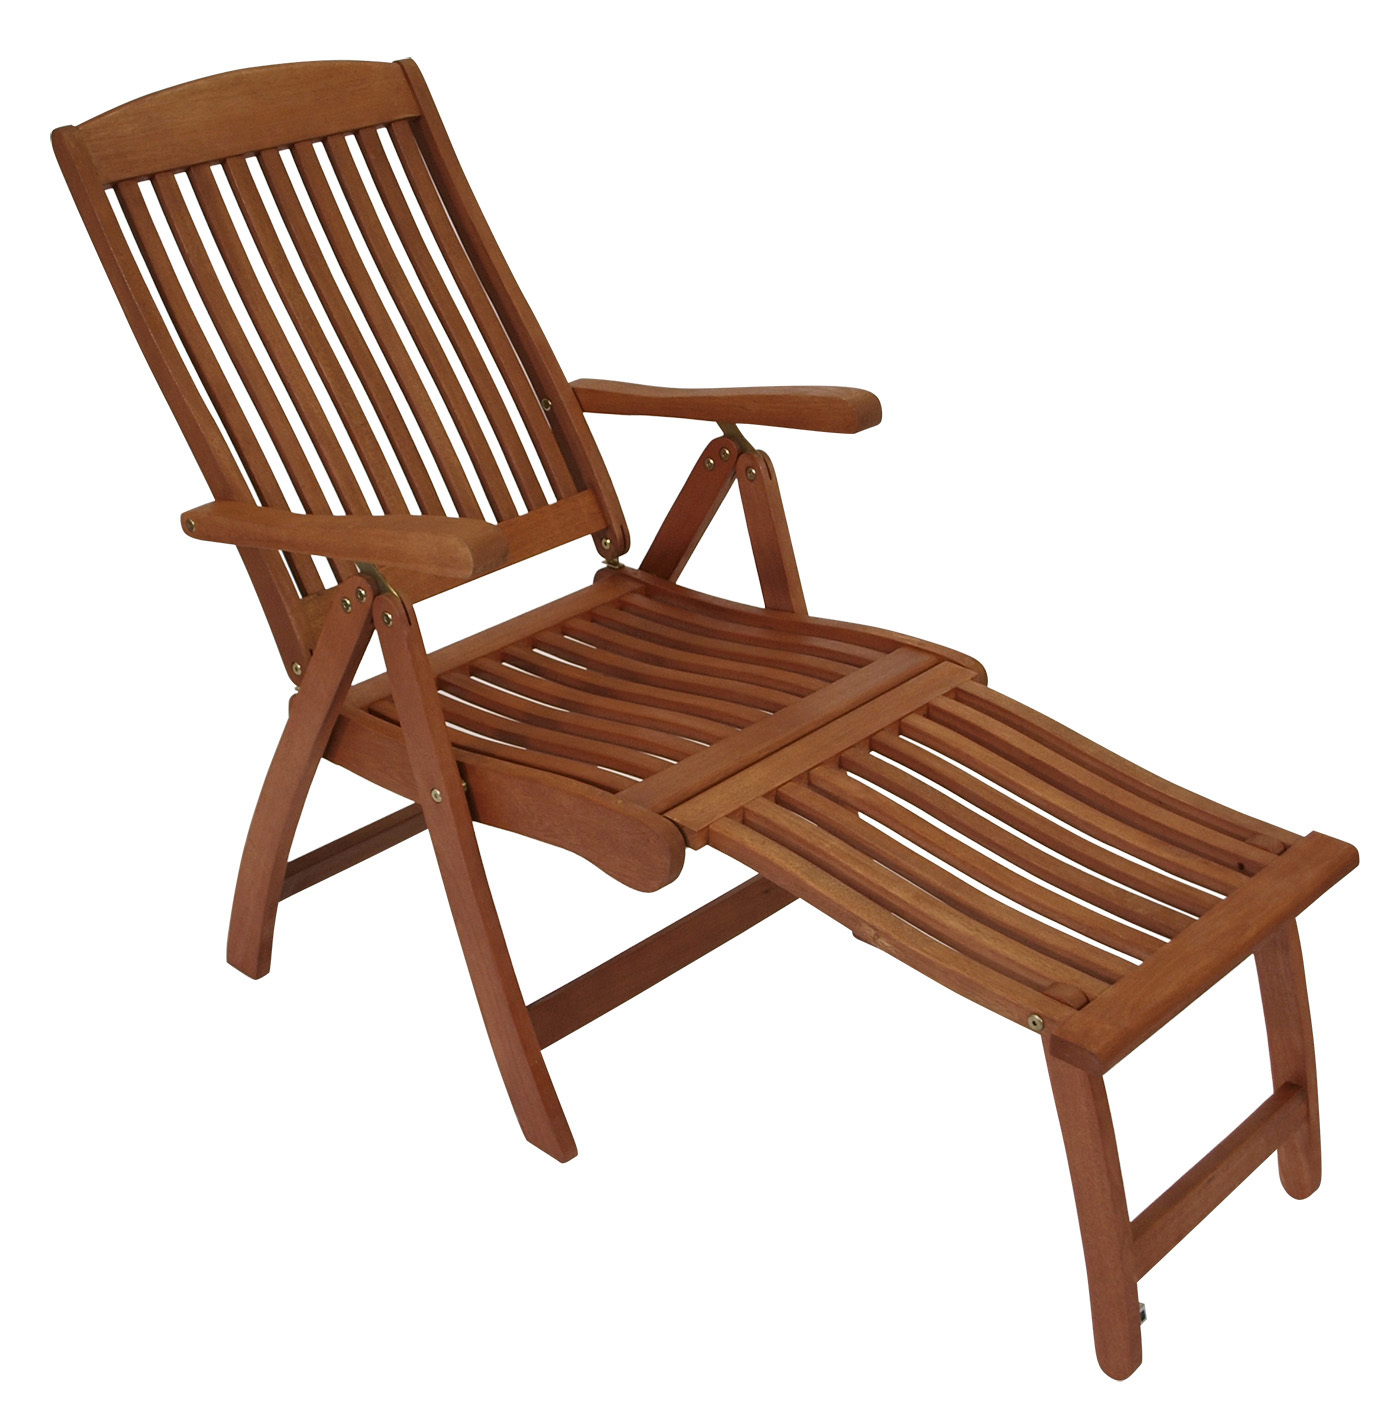 klappsessel deckchair gartensessel gartenstuhl maracaibo fussteil ausziehbar ebay. Black Bedroom Furniture Sets. Home Design Ideas